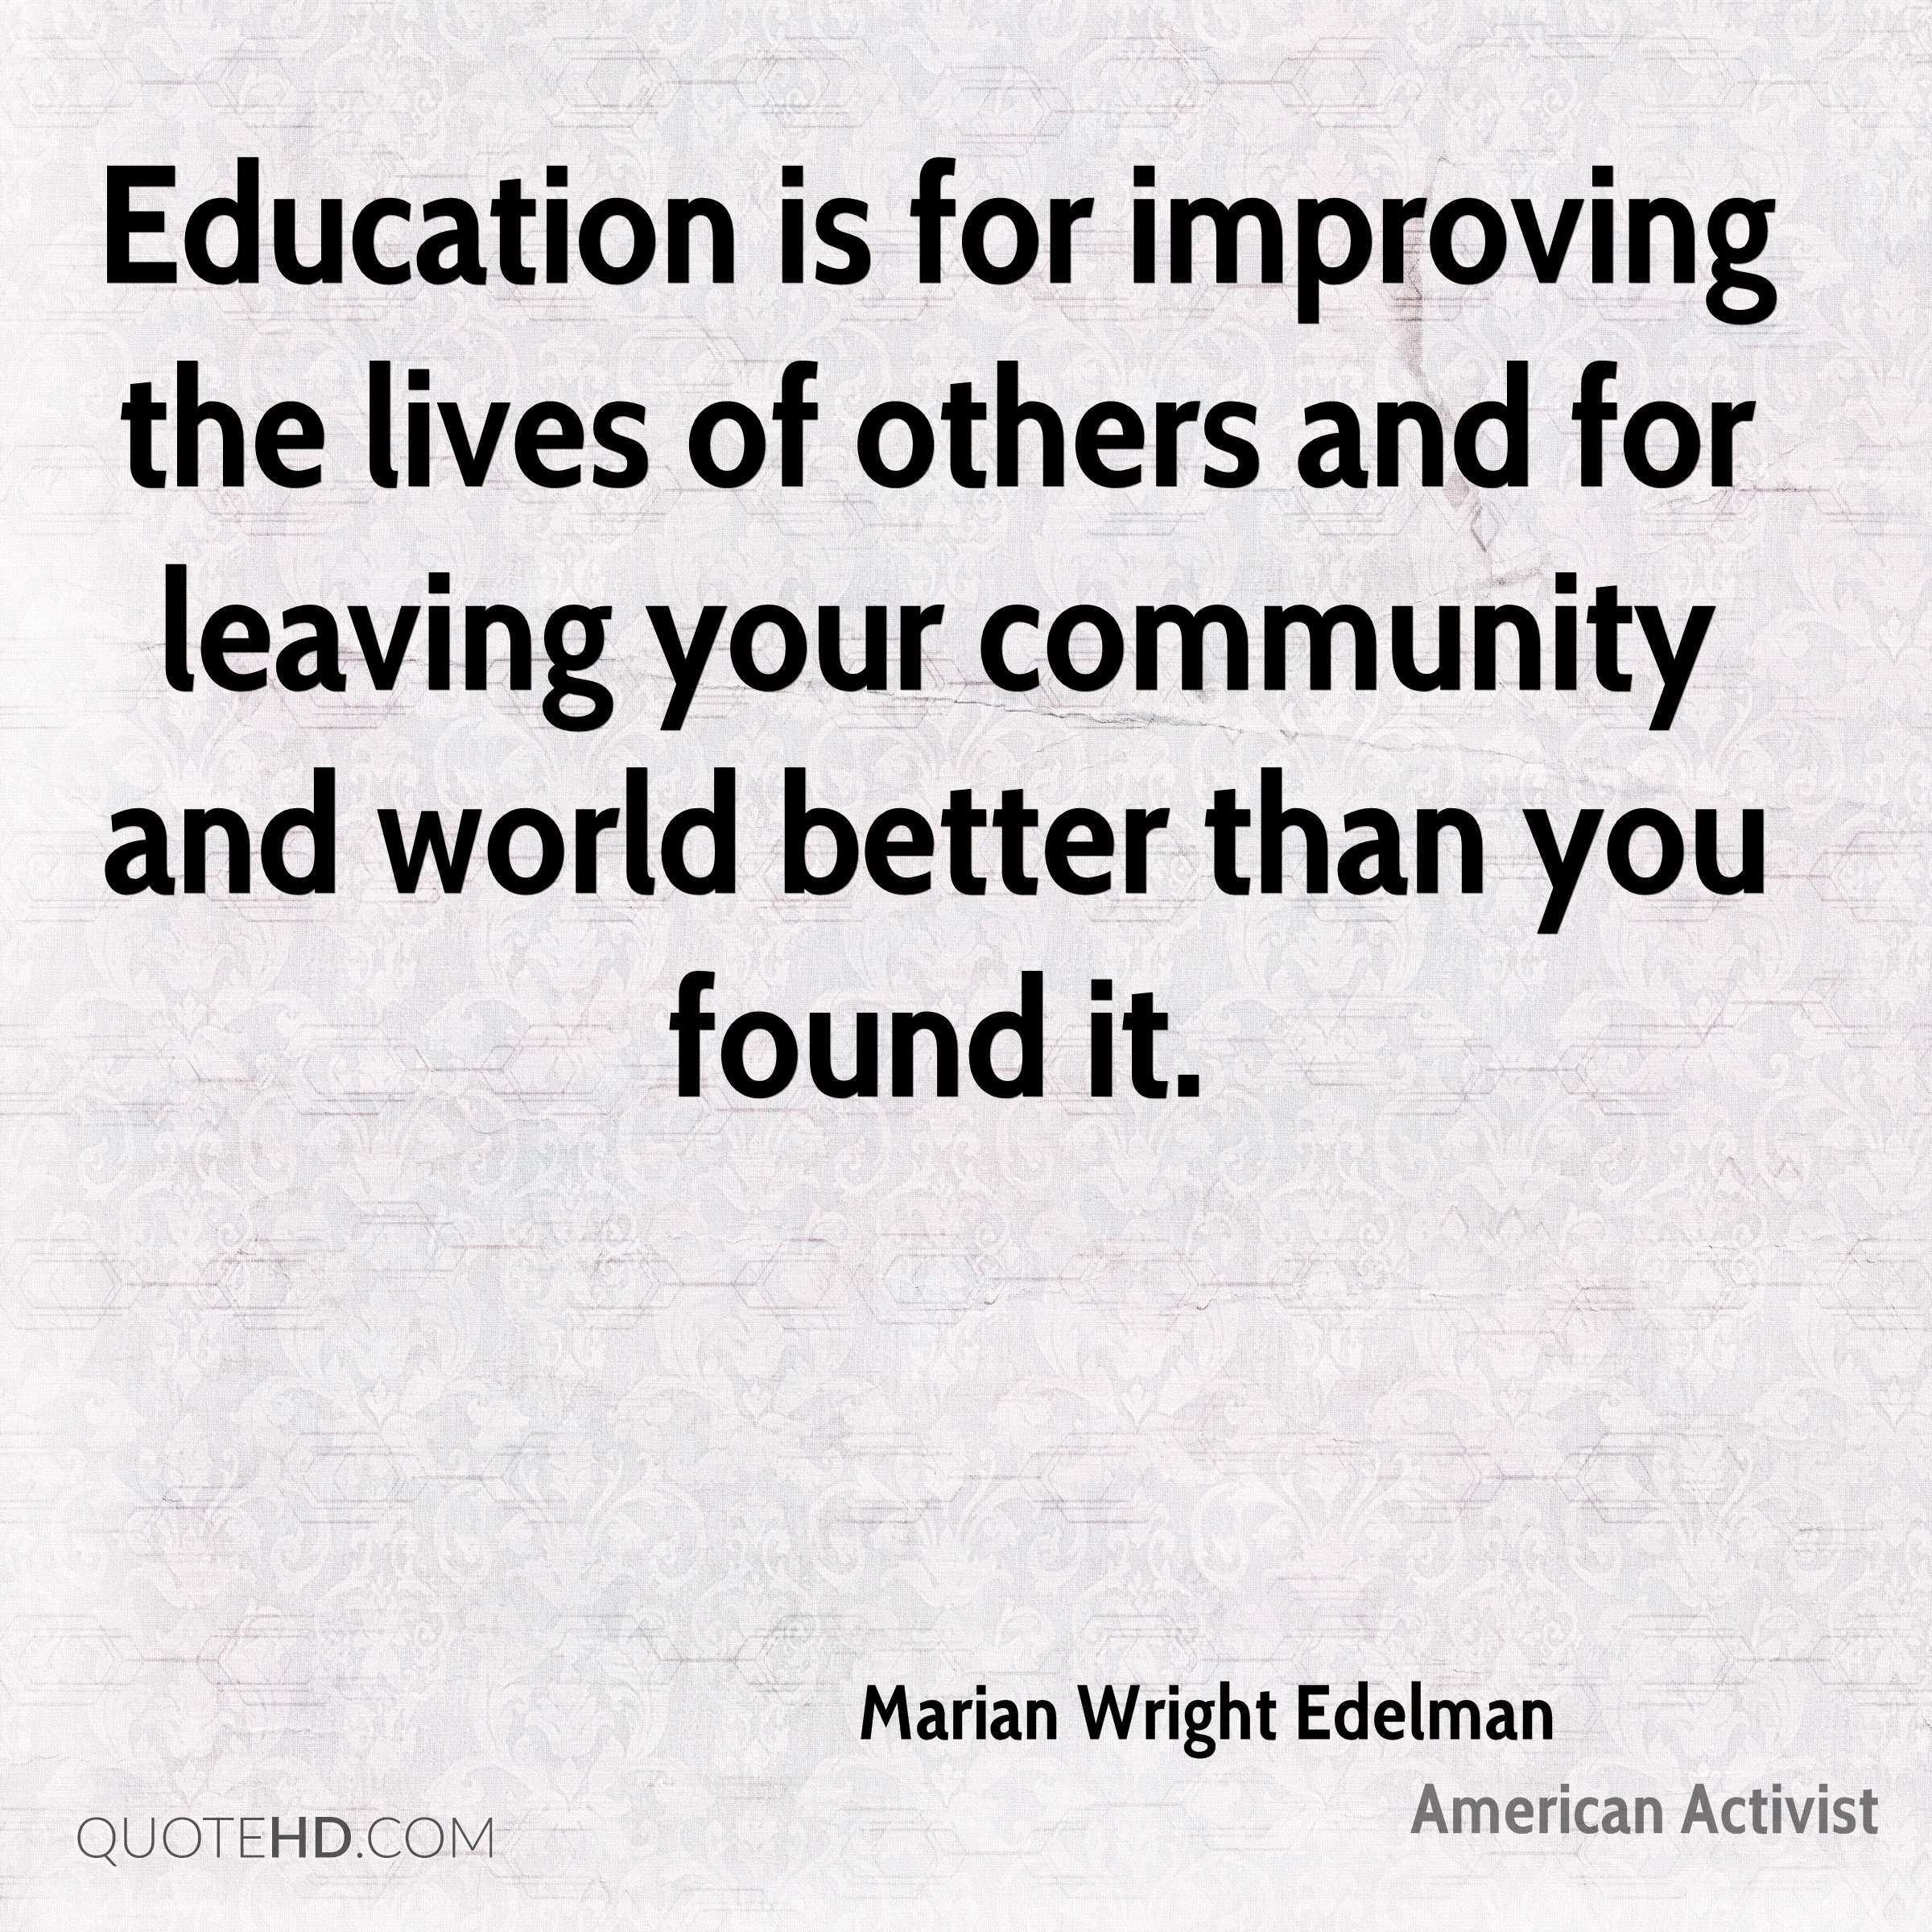 Education is for improving the lives of others and for leaving your community and world better than you found it.